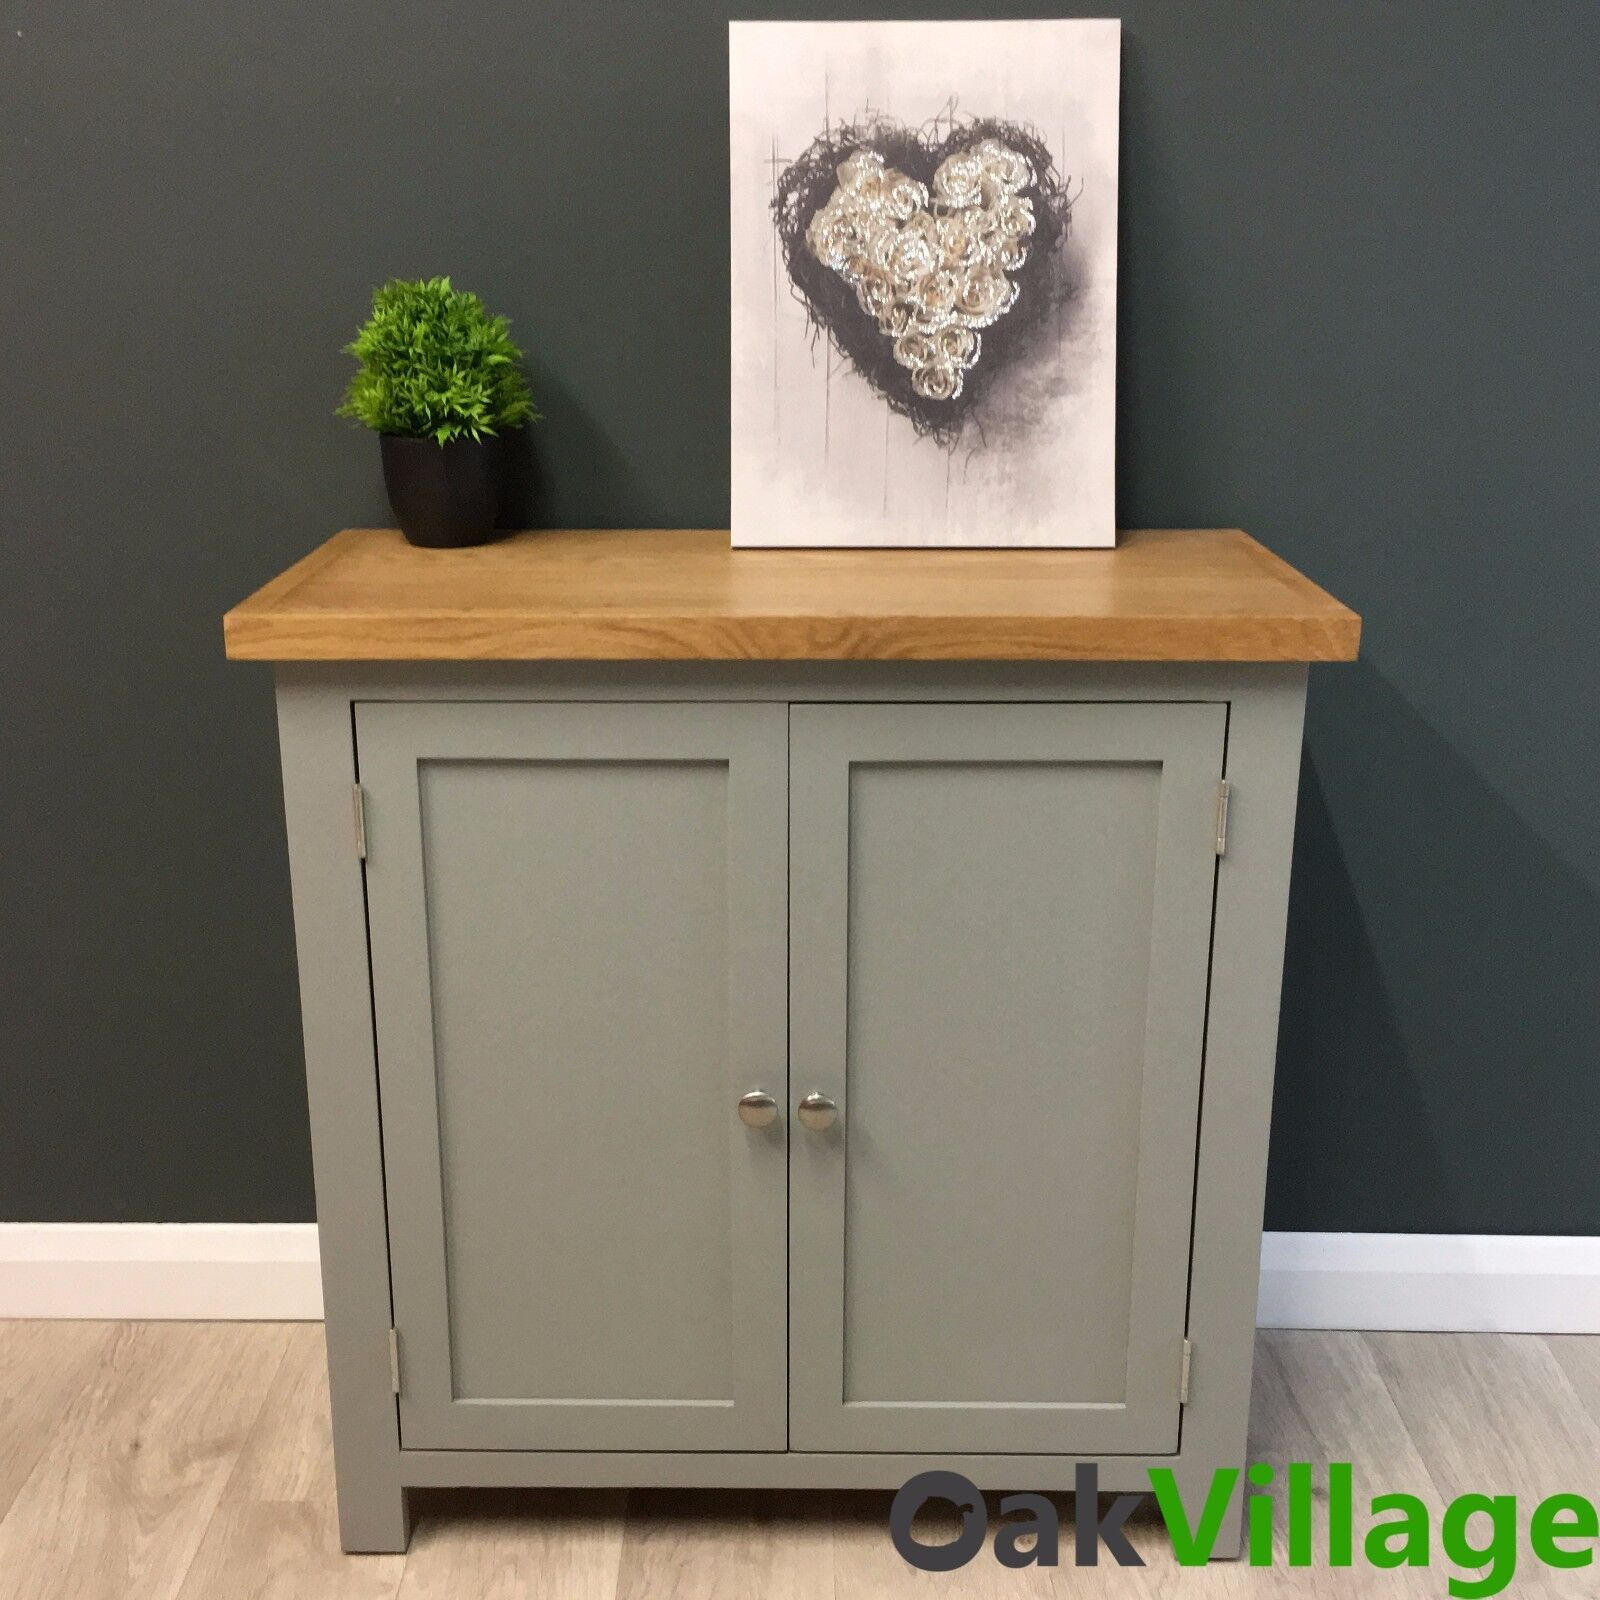 Details about grey painted linen cupboard oak grey storage cabinet solid wood greymore